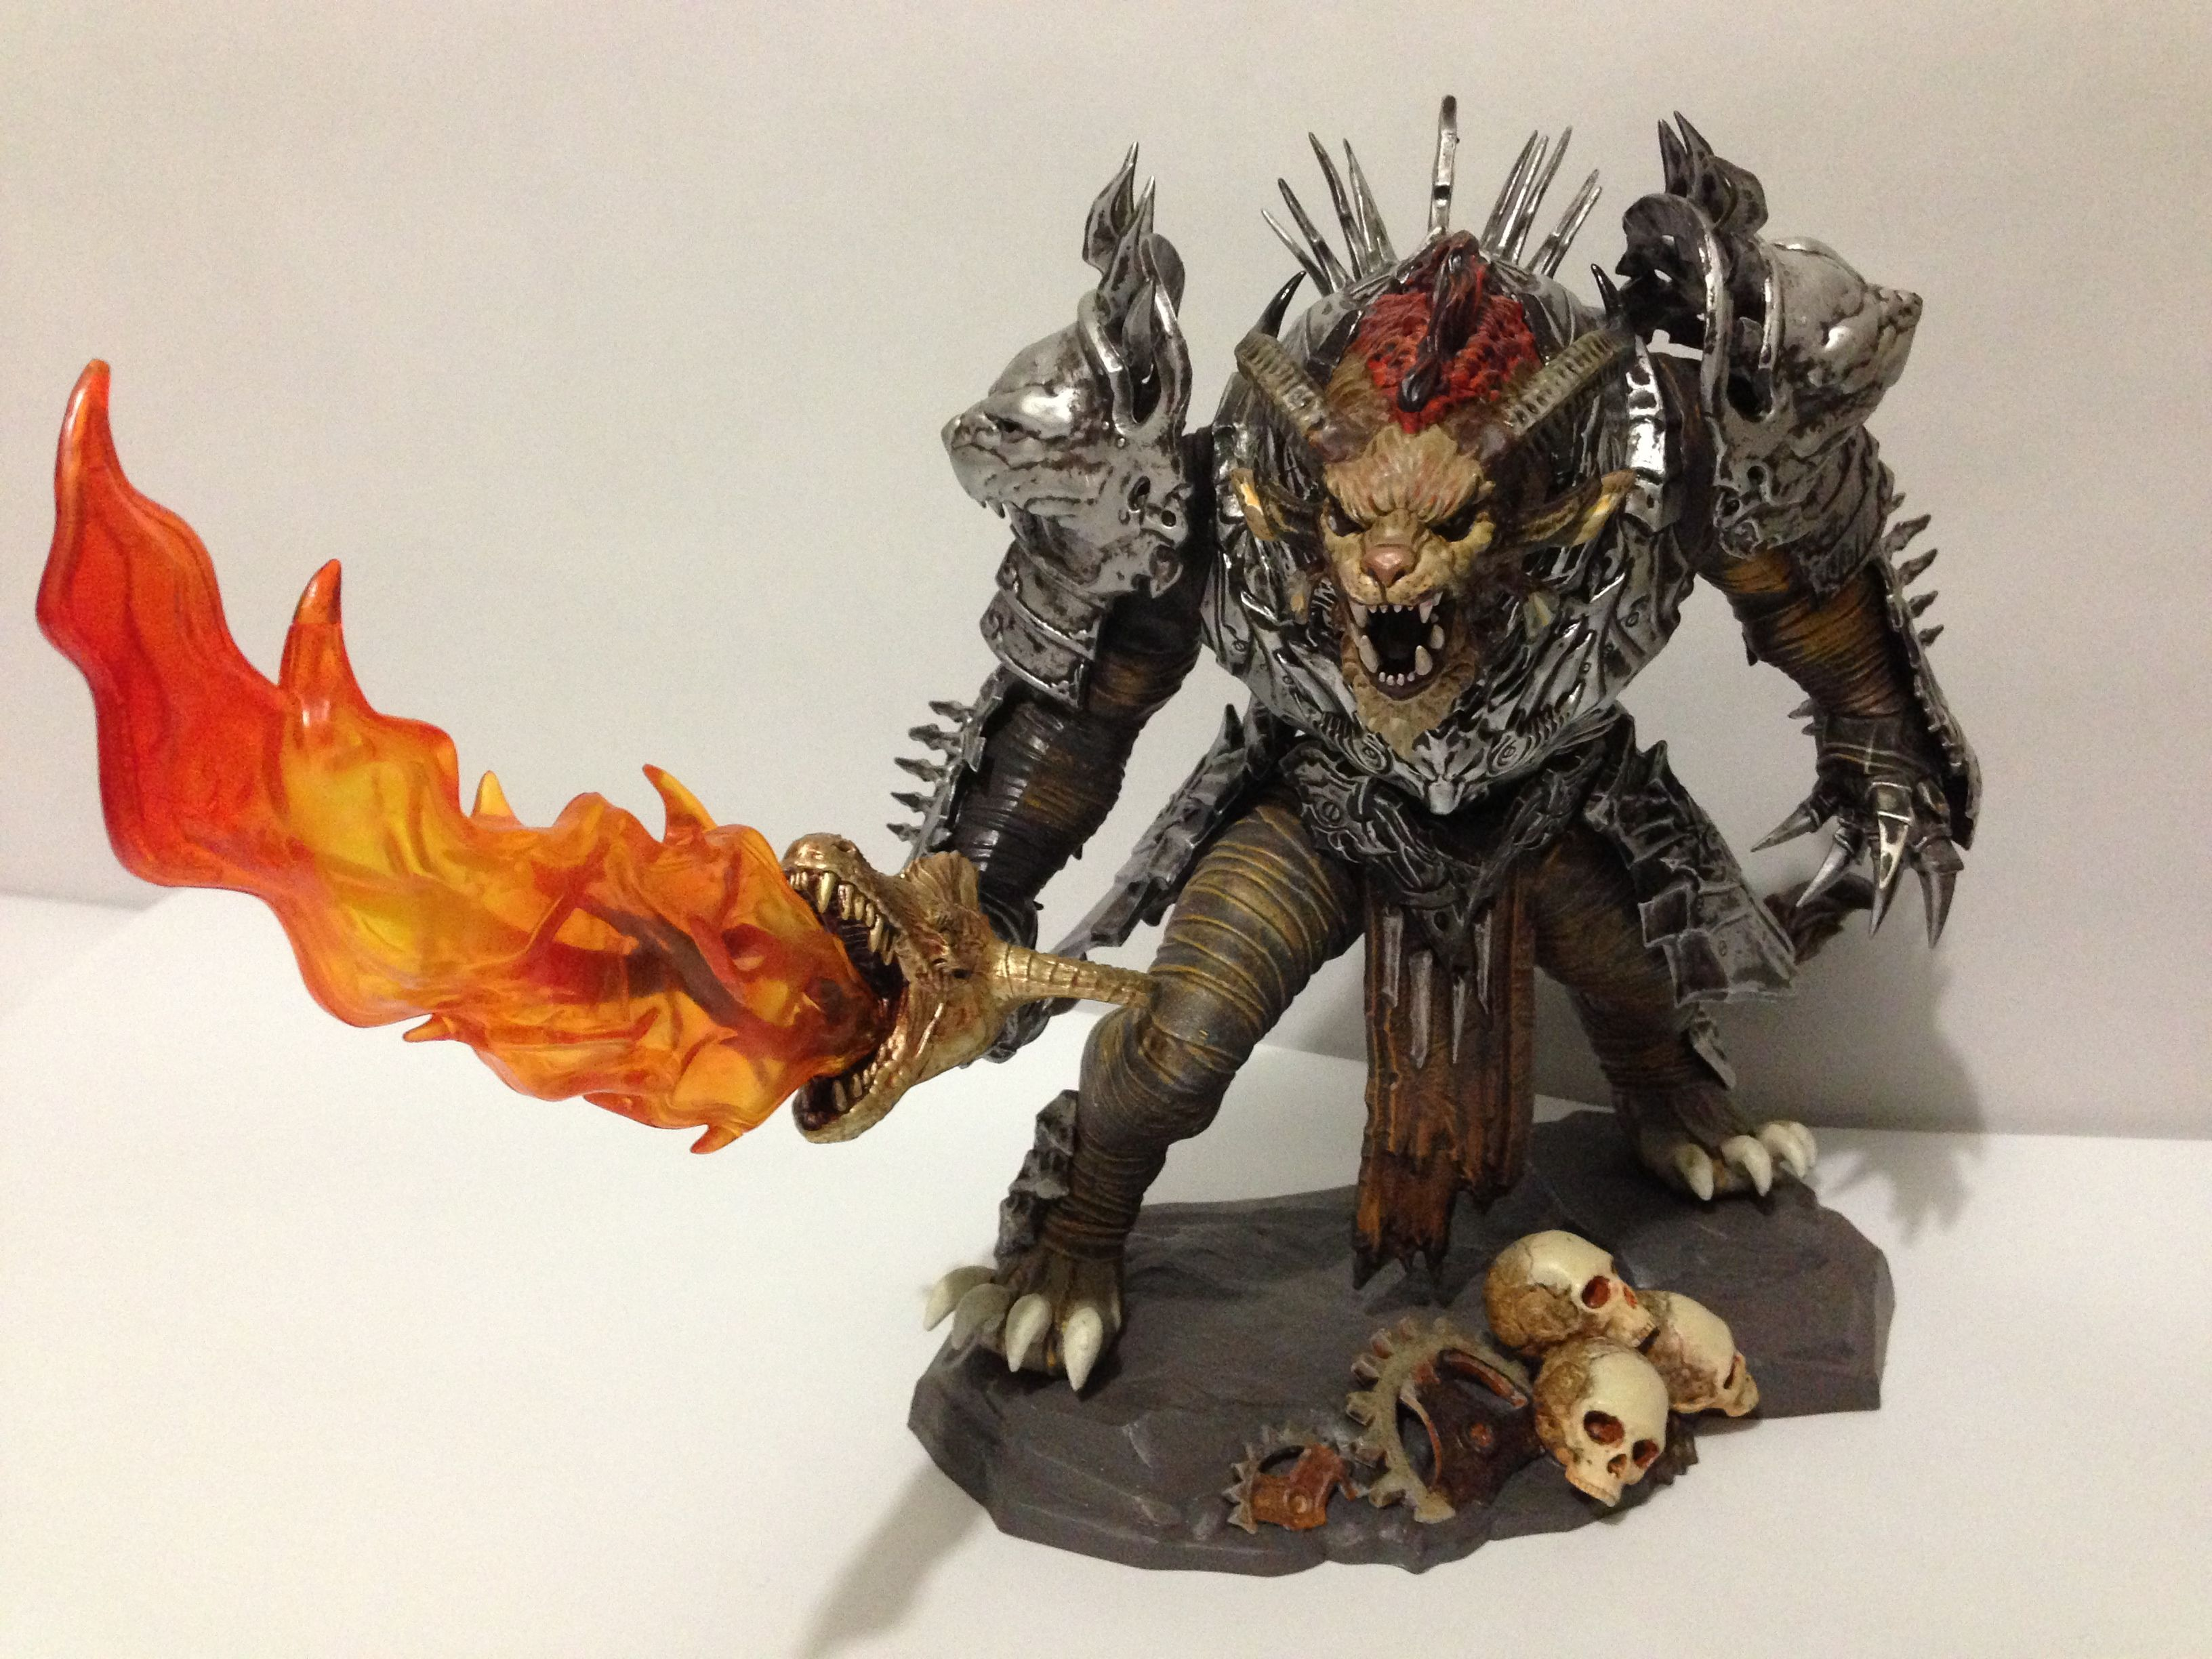 Guild Wars 2 Halloween Decorations 2020 Guild Wars 2: Char Statue from the collector's Edition. | Guild